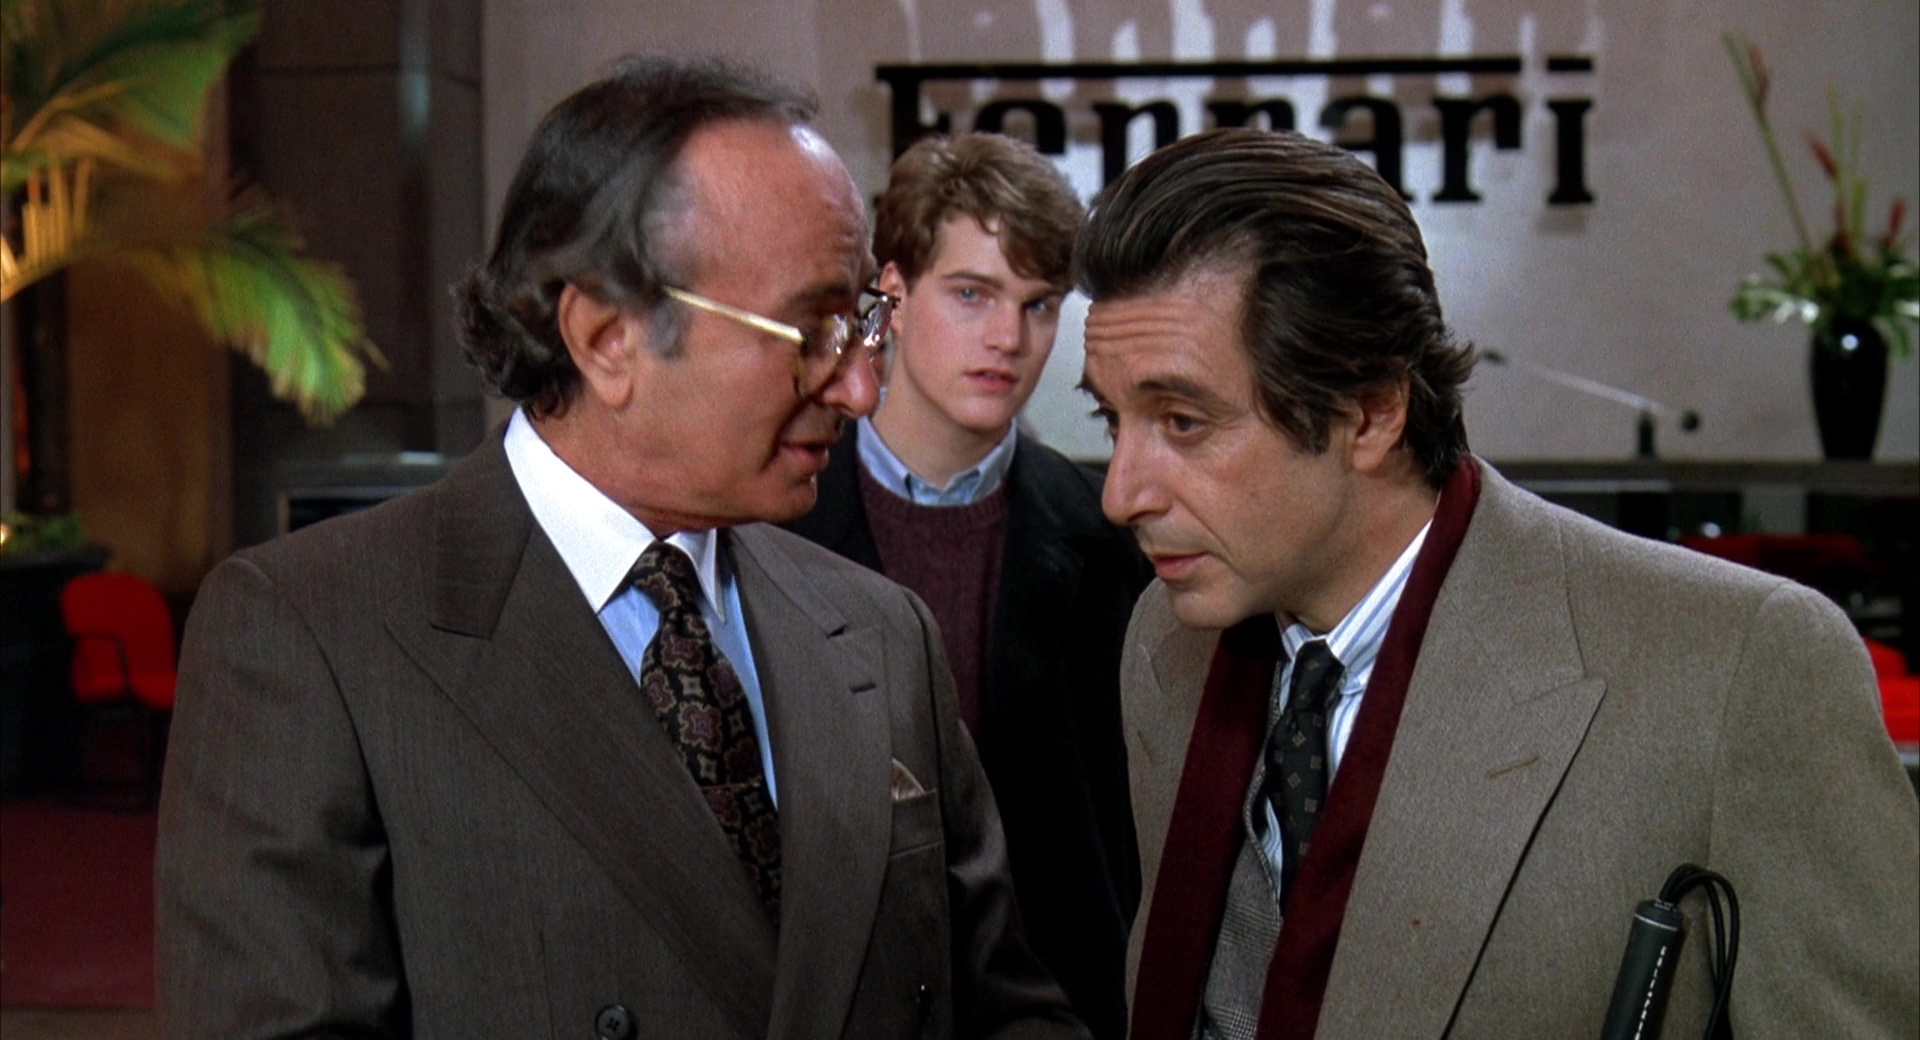 Ferrari Car Dealer Chris O Donnell And Al Pacino In Scent Of A Woman 1992 Movie